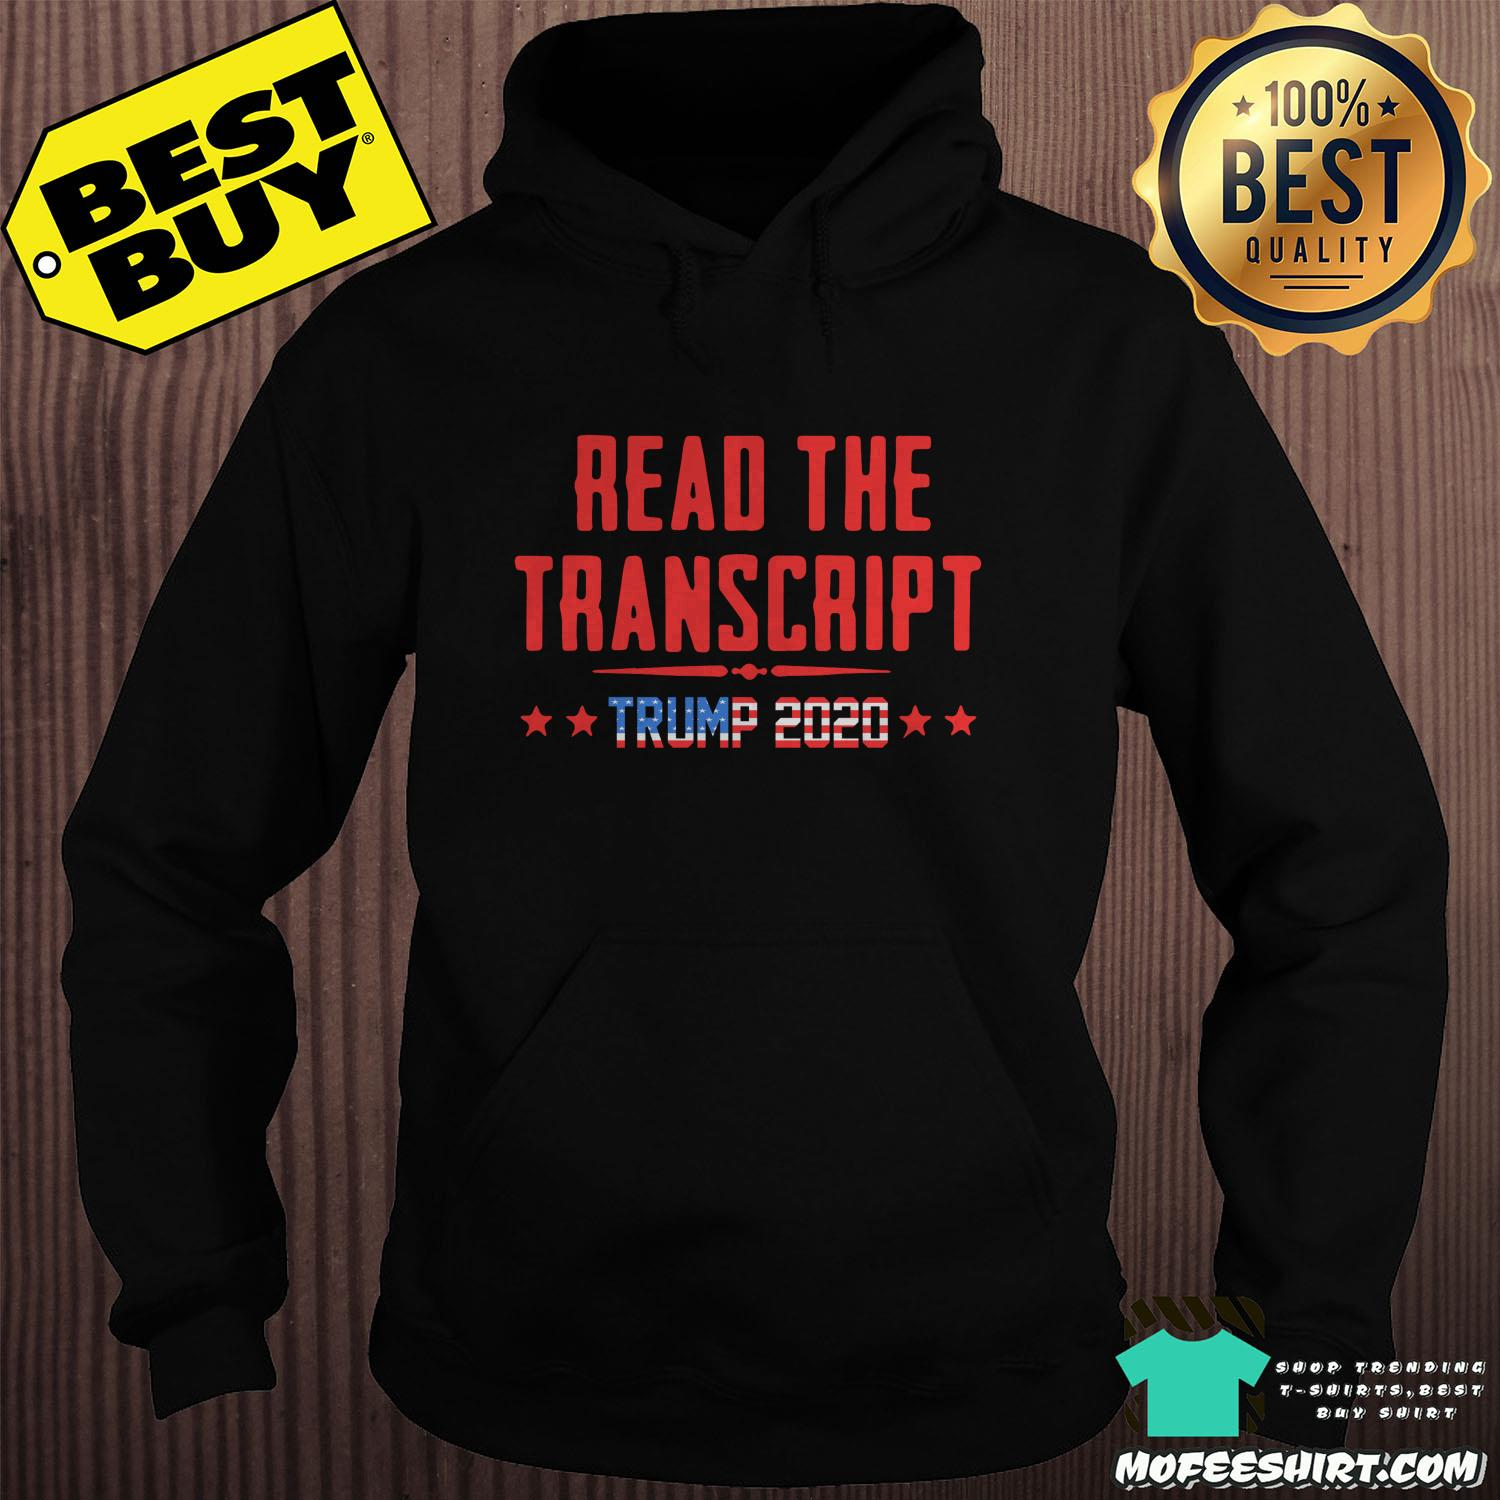 read the transcript trump impeachment day hoodie sweater - Read The Transcript Trump Impeachment Day Shirt Sweater